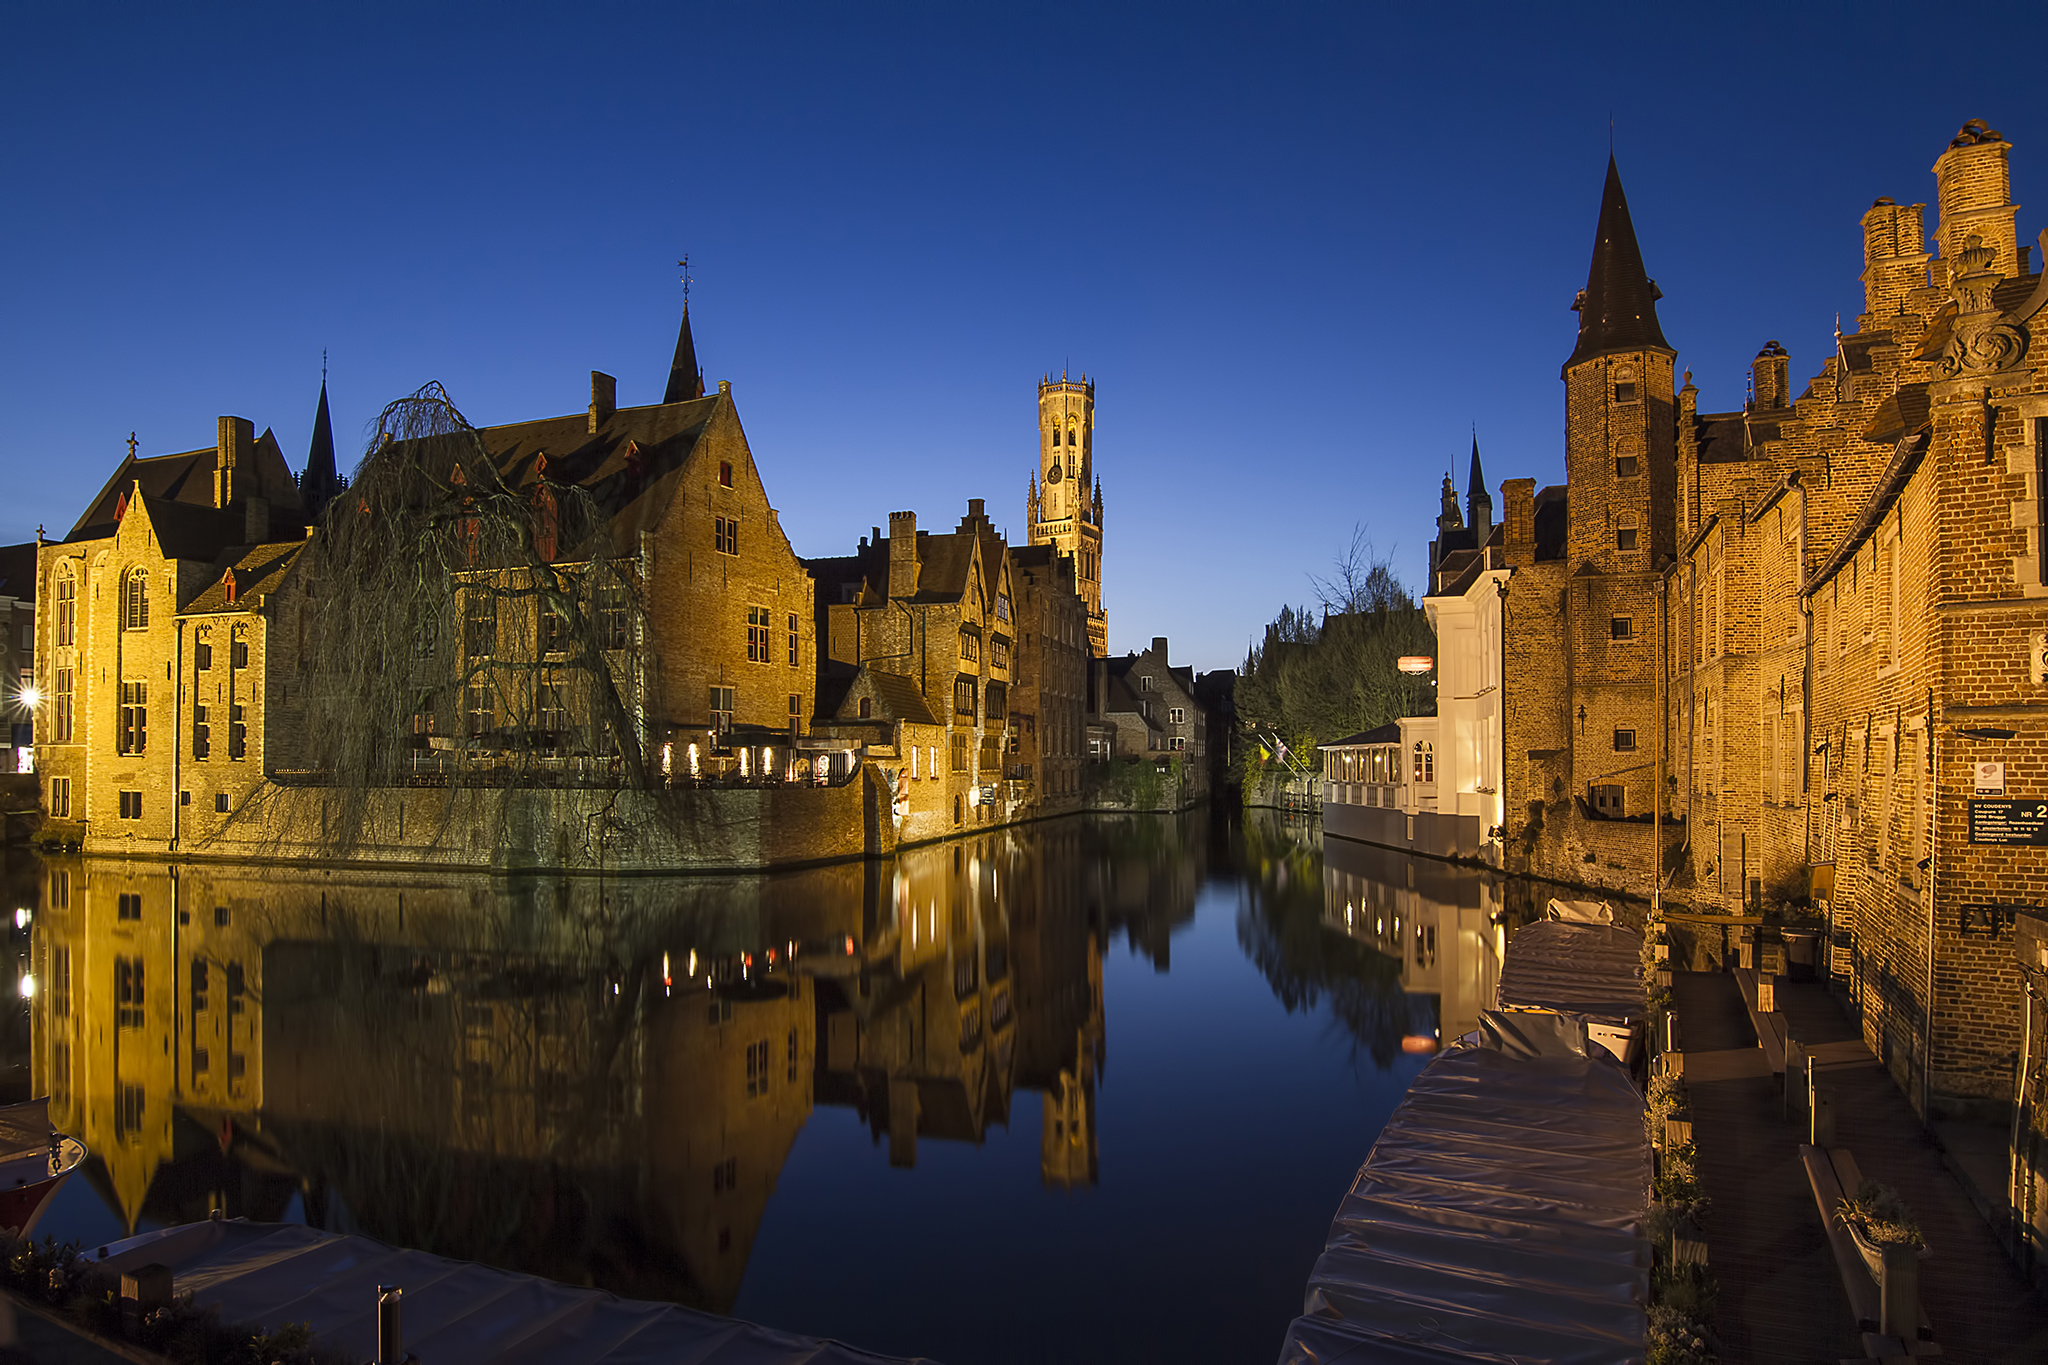 The Belfort of Bruges, Belgium